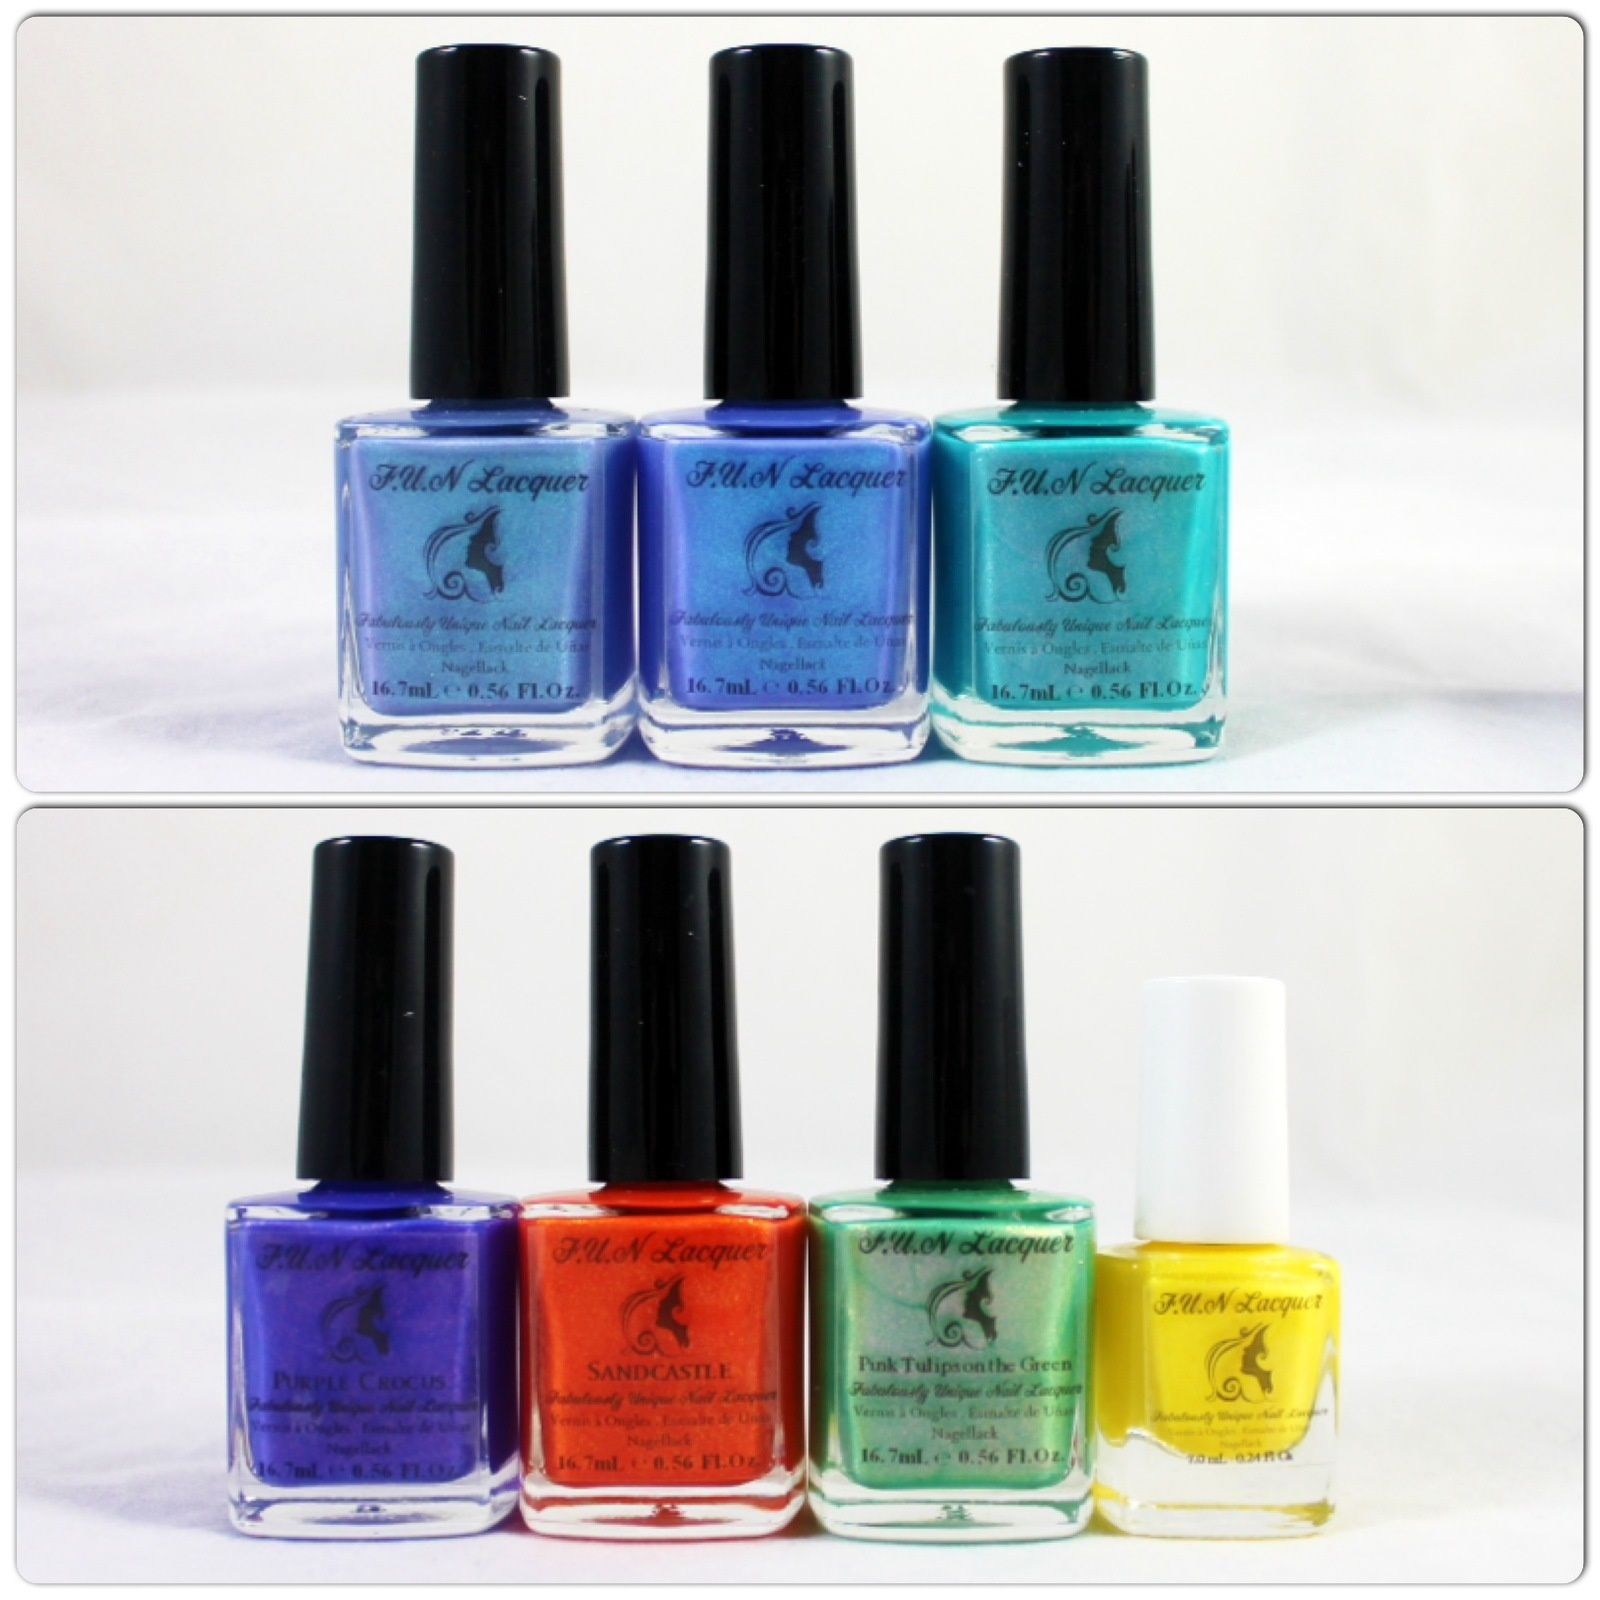 Fun Lacquer French is FUN (H), French is FUN, beautiful Mistake, Purple Crocus, Sandcastle, Pink Tulips on the Green & Wishing Star.